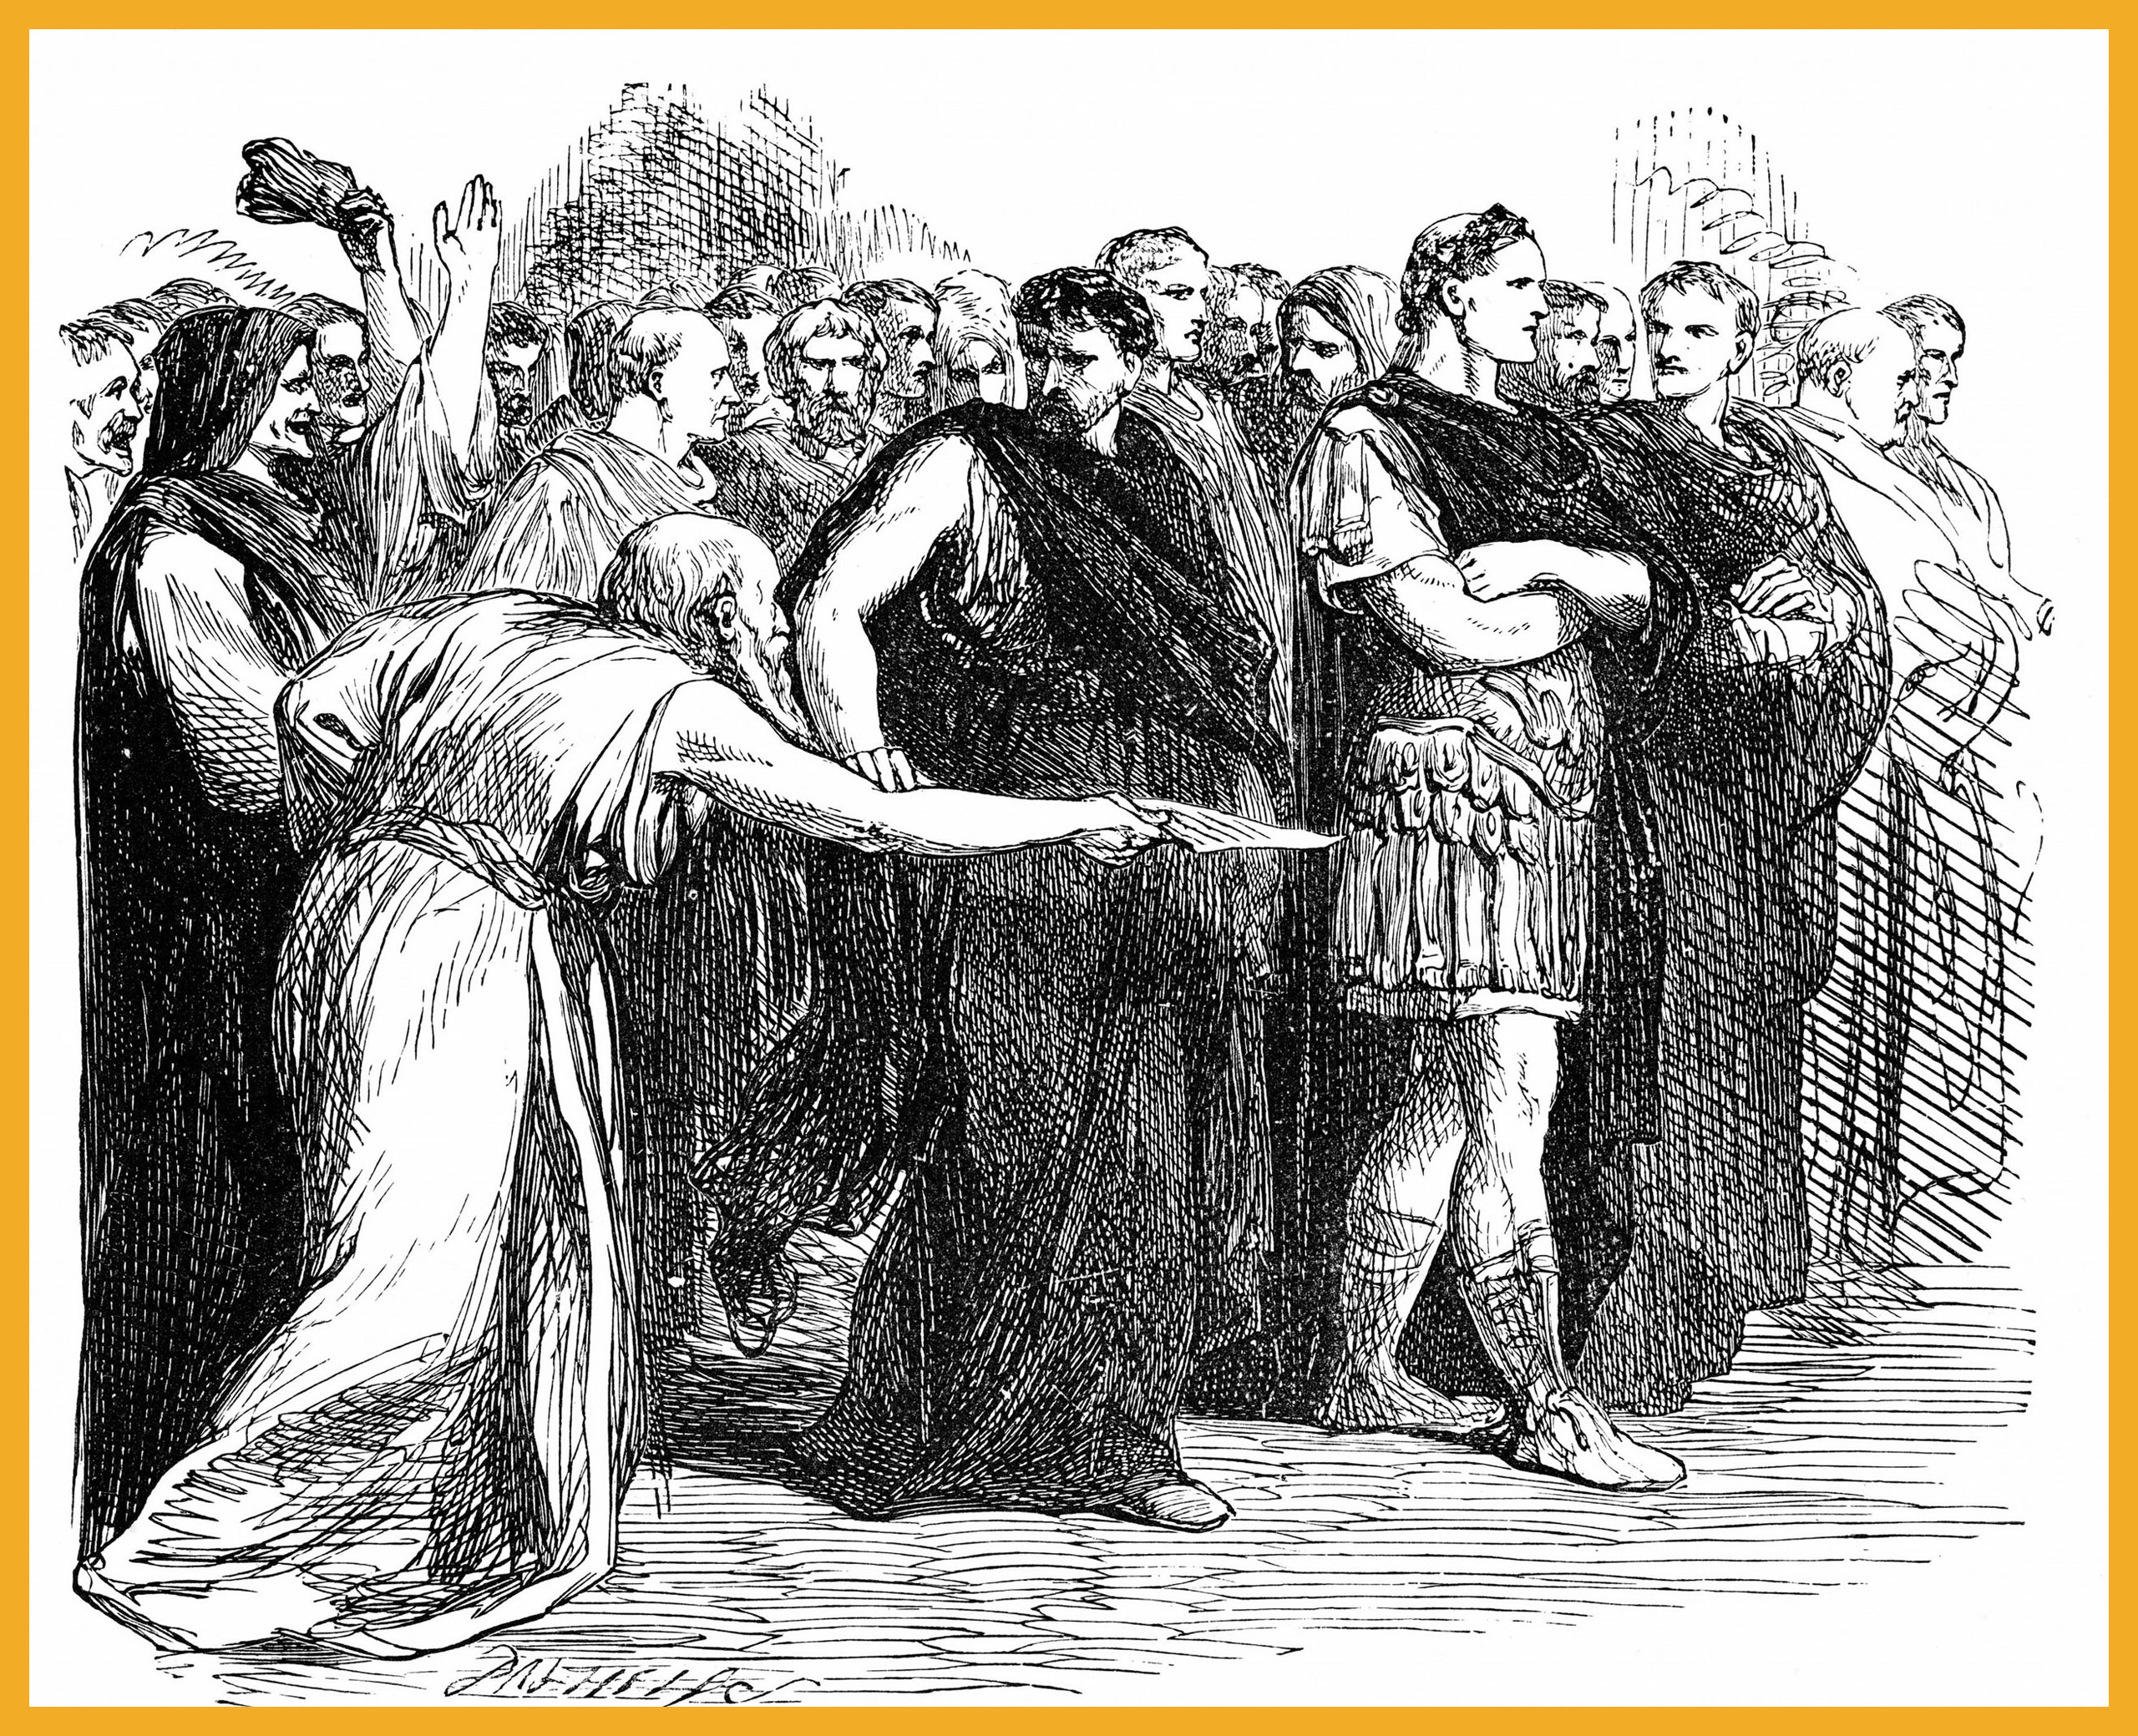 Beware the Ides of March: Soothsayer warning Julius Caesar of the Ides of March - the day on which he was assassinated. Illustration for Julius Caesar from an edition of William Shakespeare's works published 1858.